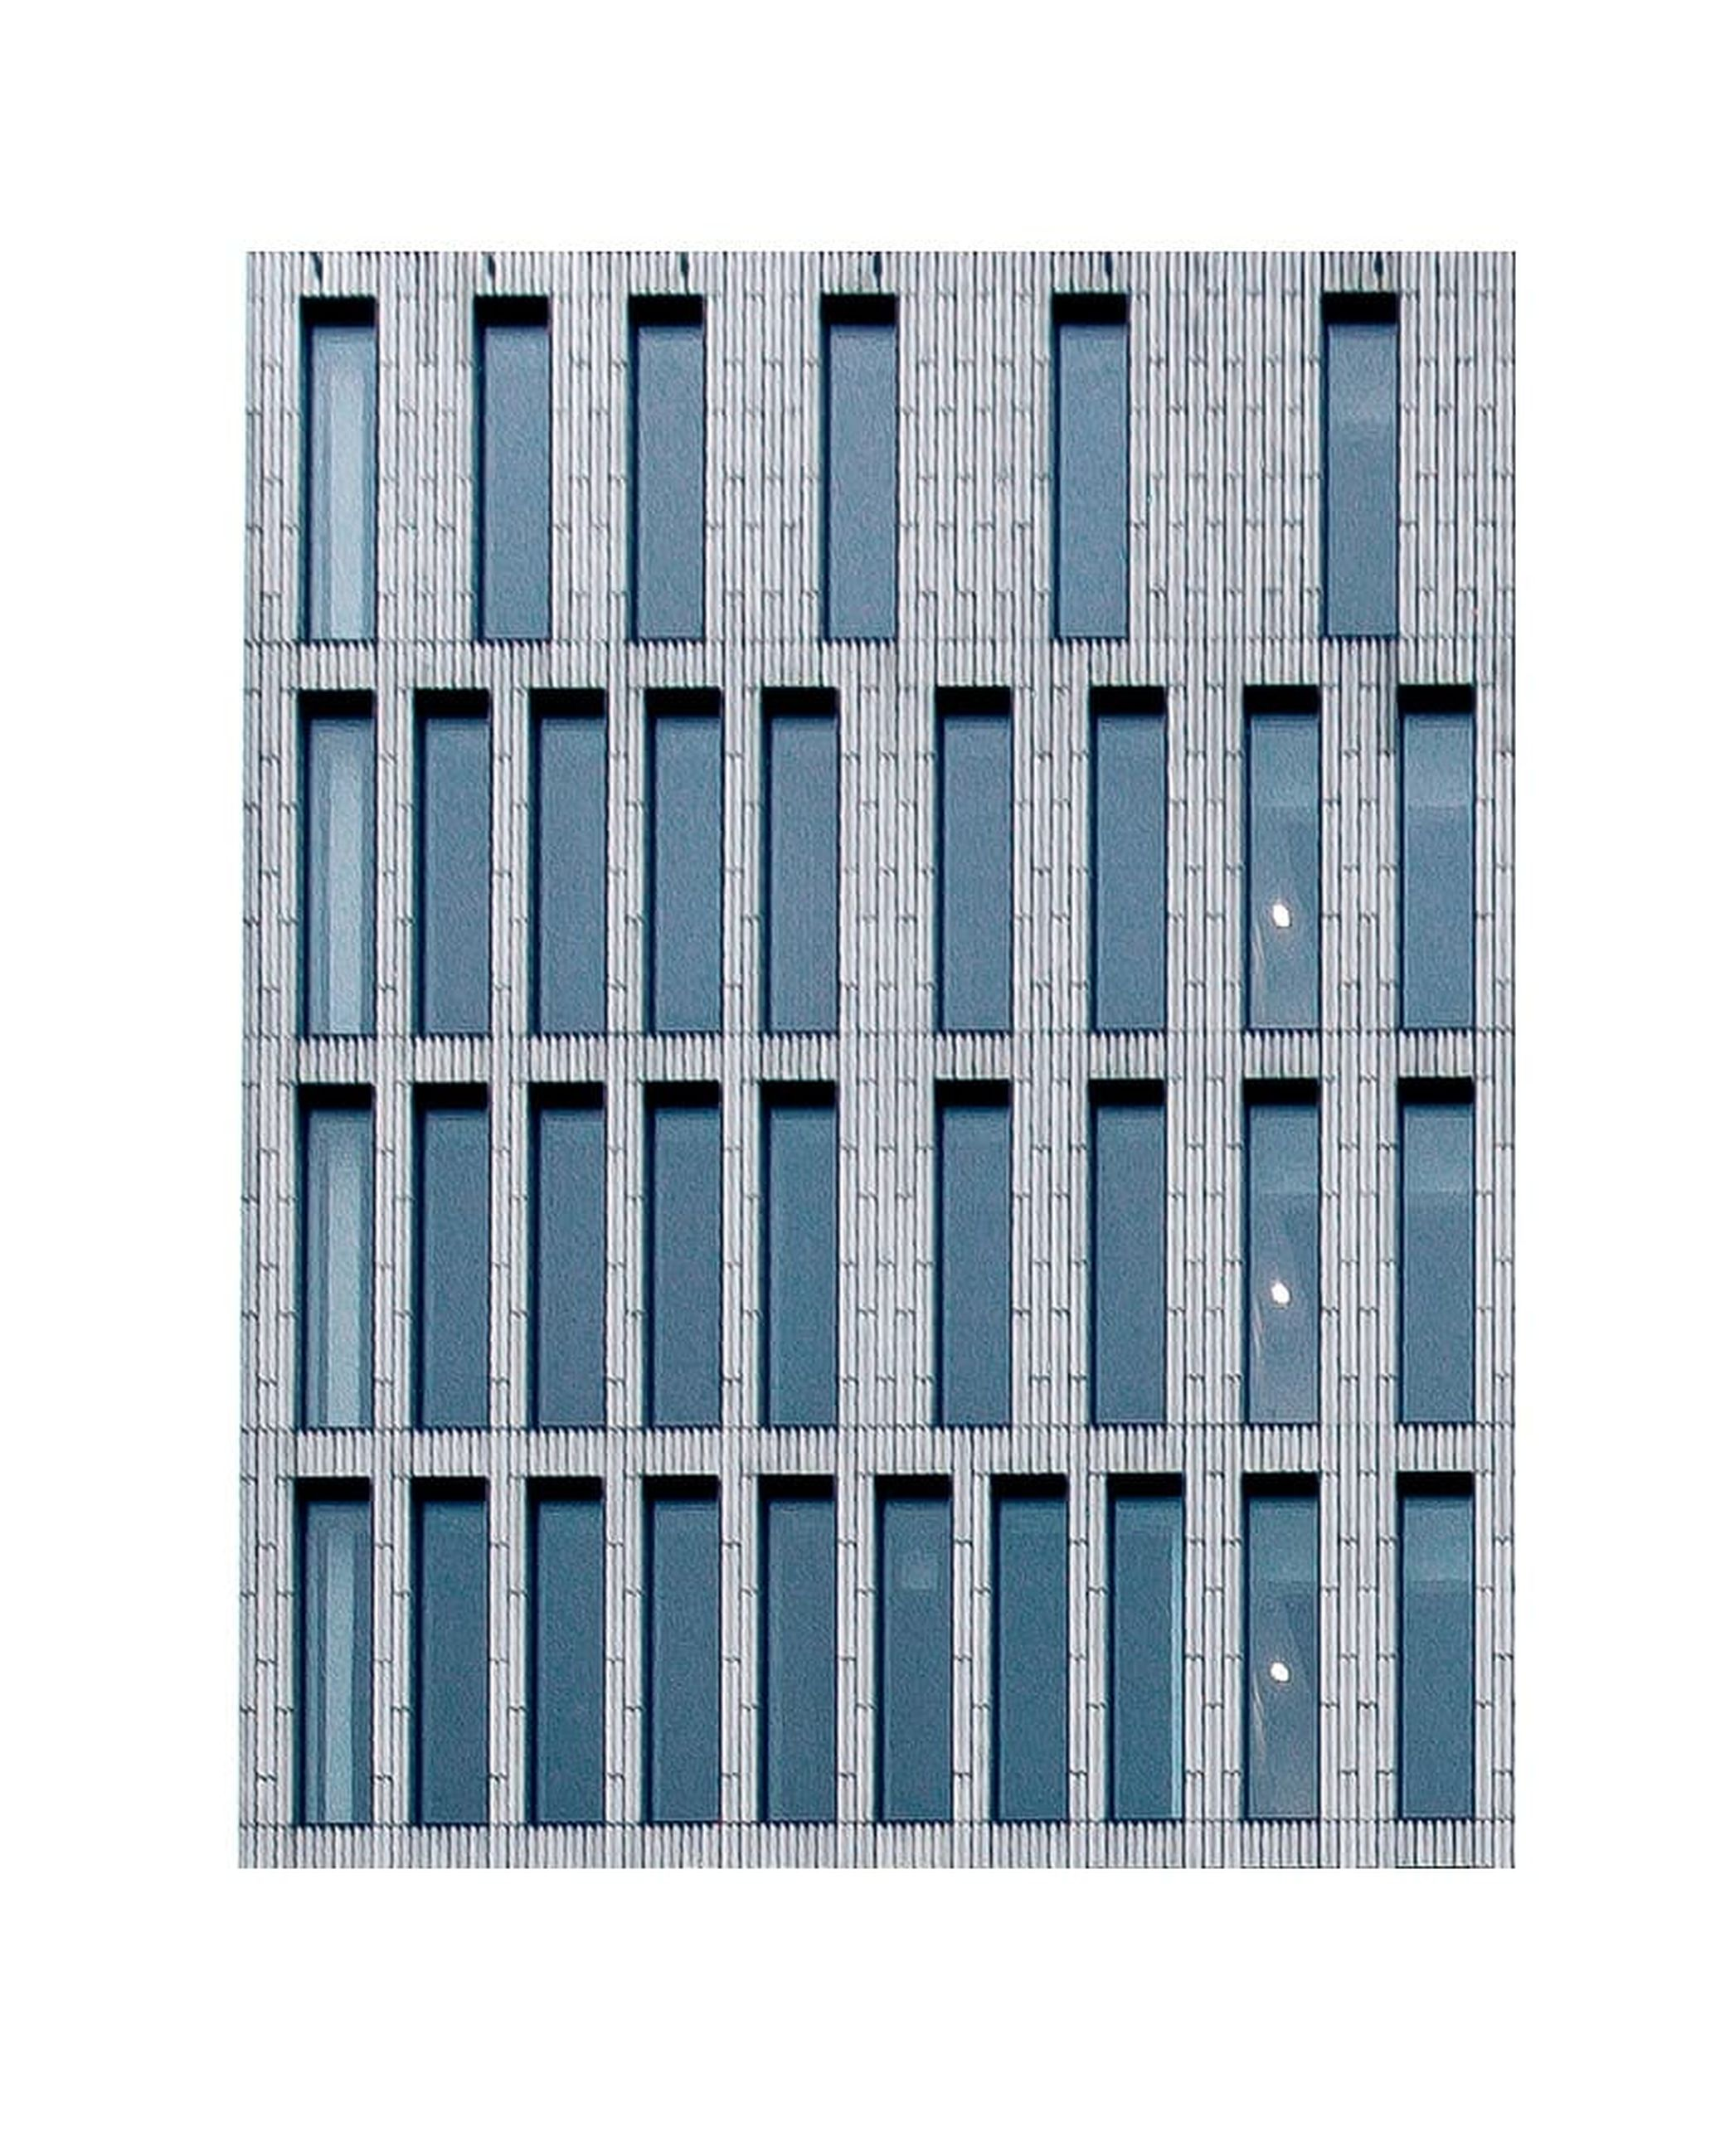 window, architecture, built structure, building exterior, building, no people, glass - material, cut out, pattern, blue, shape, low angle view, day, geometric shape, city, outdoors, office, design, sky, square shape